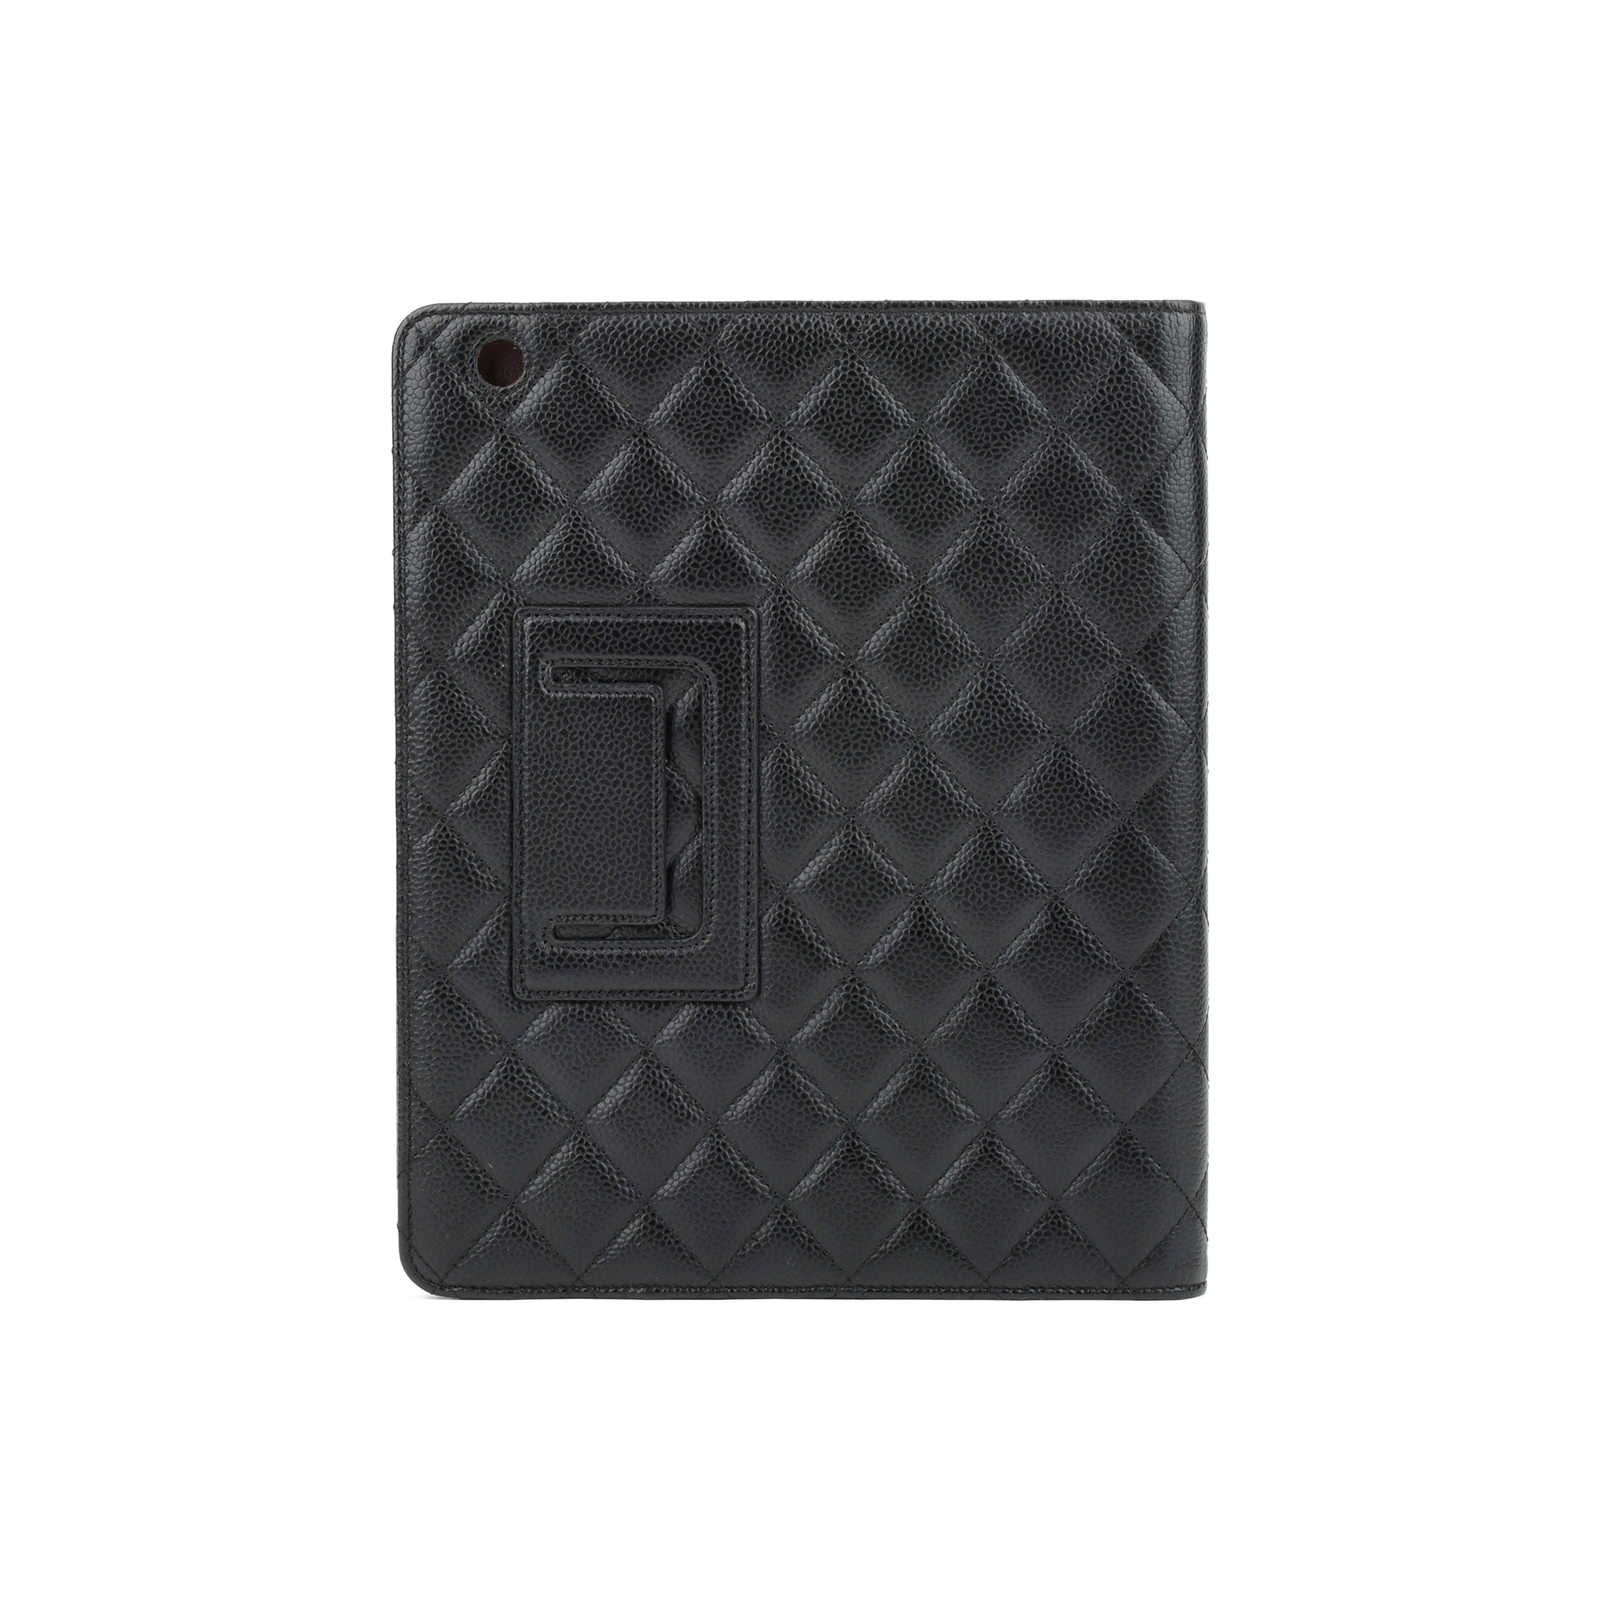 1571bb275f43 ... Authentic Second Hand Chanel Caviar Ipad Case (PSS-051-00280) -  Thumbnail ...